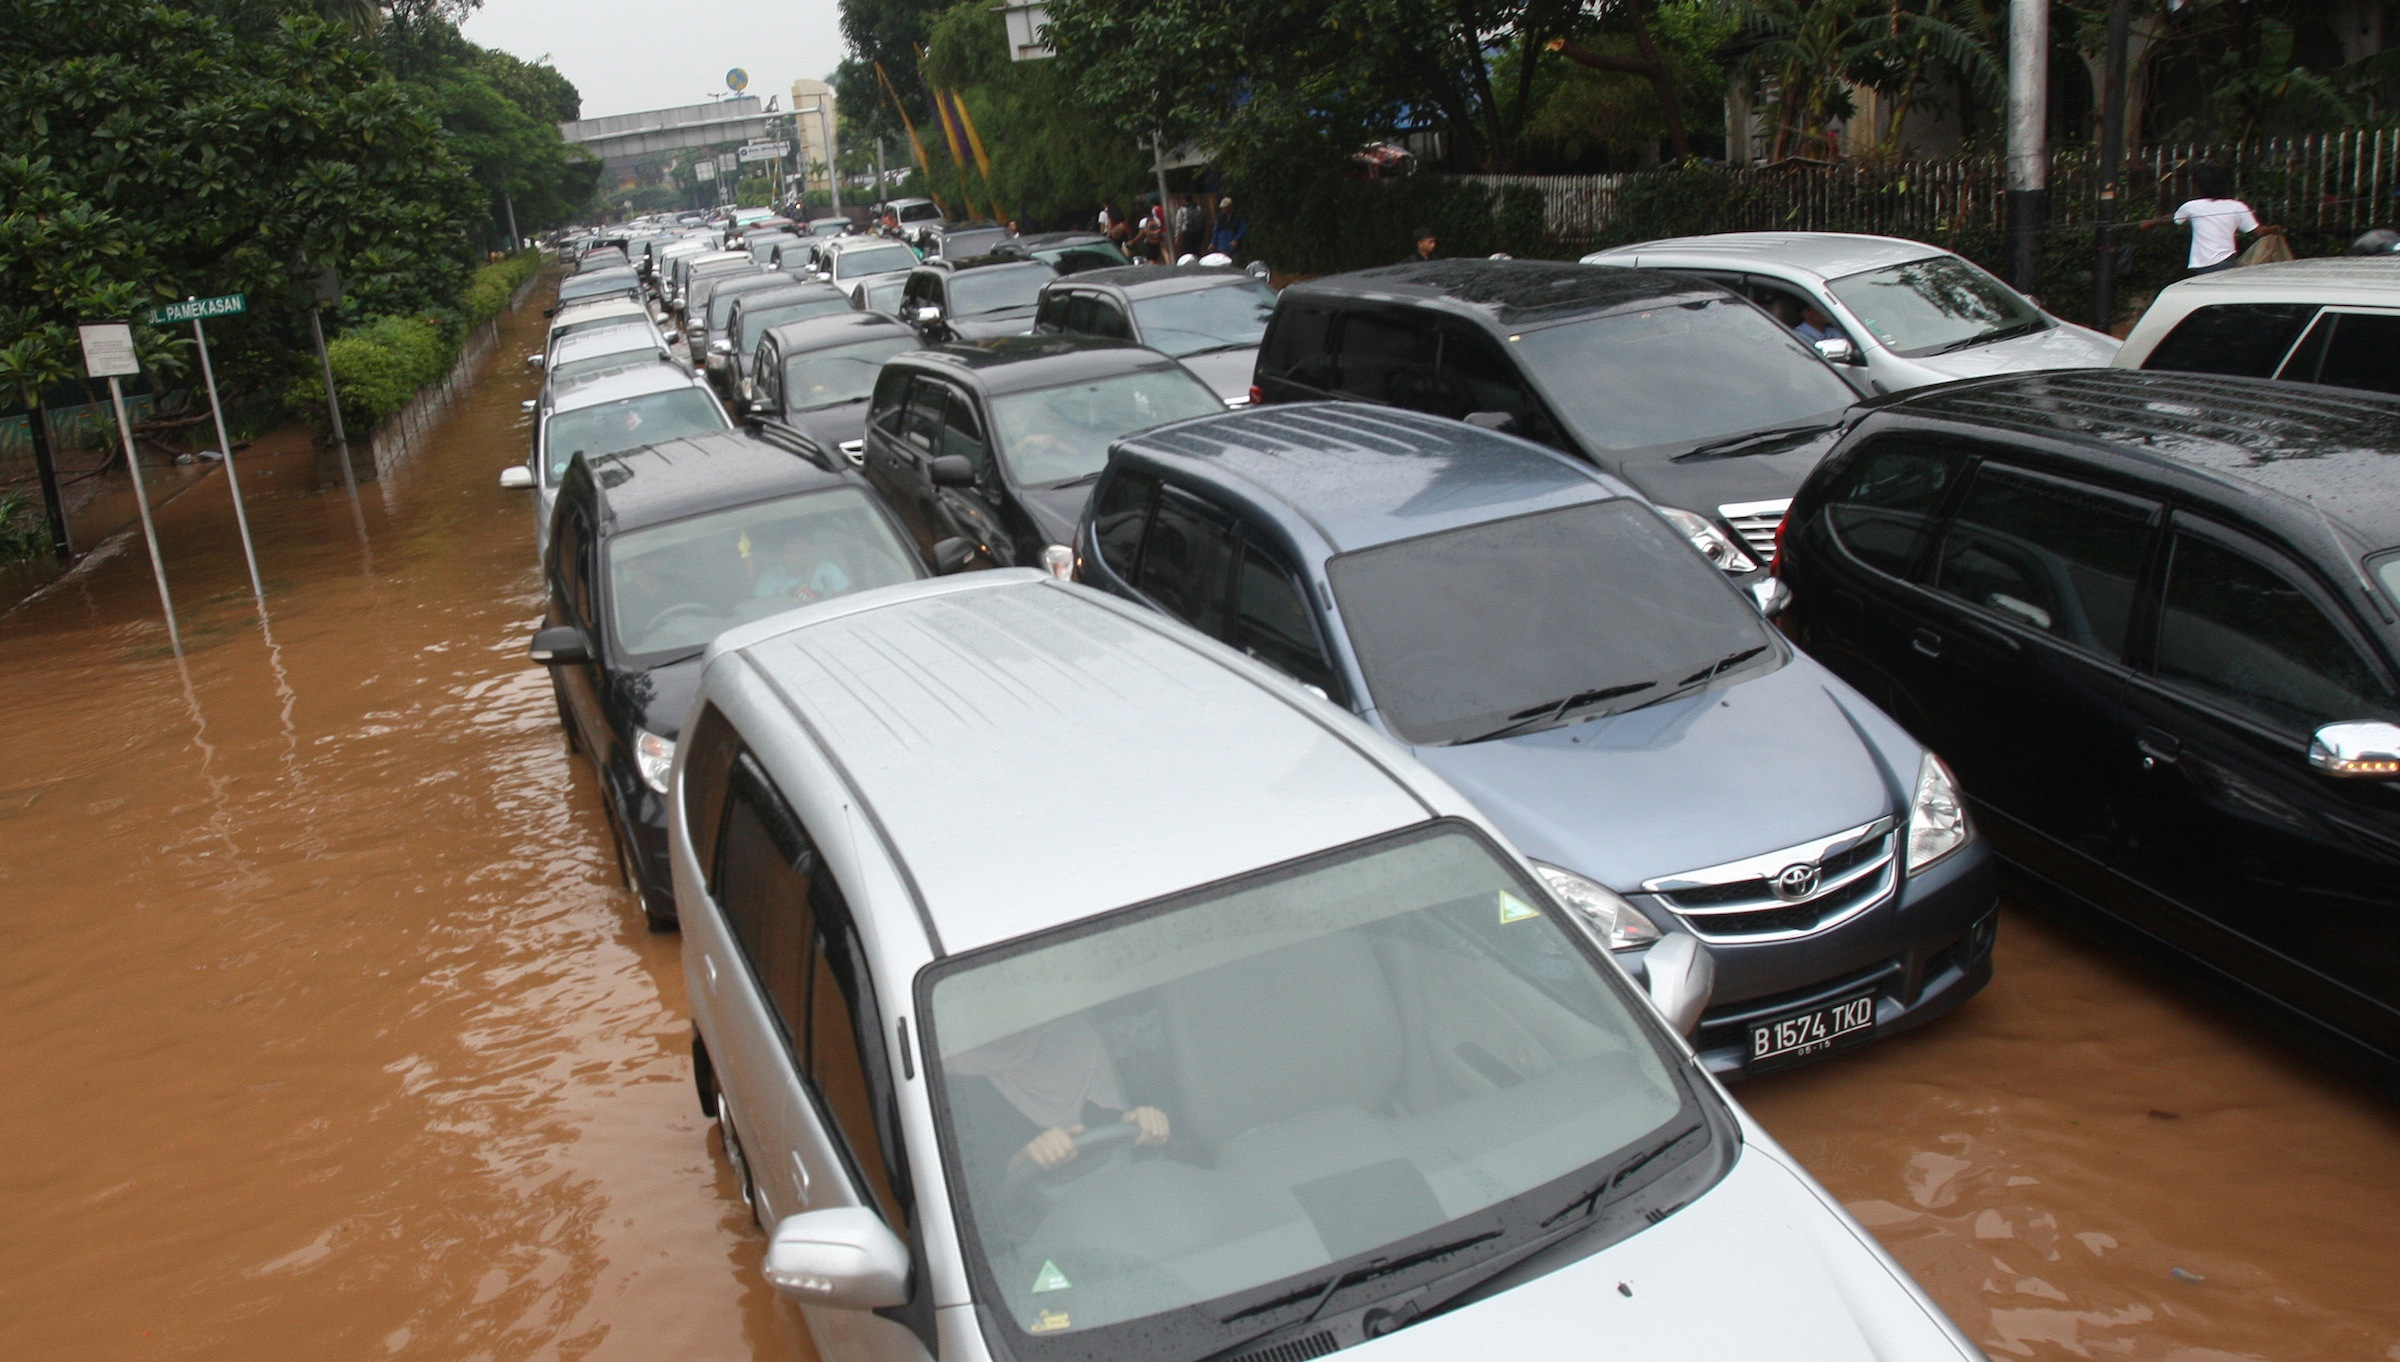 Traffic on  through a flooded street in Jakarta, Indonesia Friday, Jan. 18, 2013. Indonesia's army deployed rubber boats in the capital's business district on Thursday to rescue people trapped in floods that inundated much of the city of 14 million people.(AP Photo/Achmad Ibrahim)